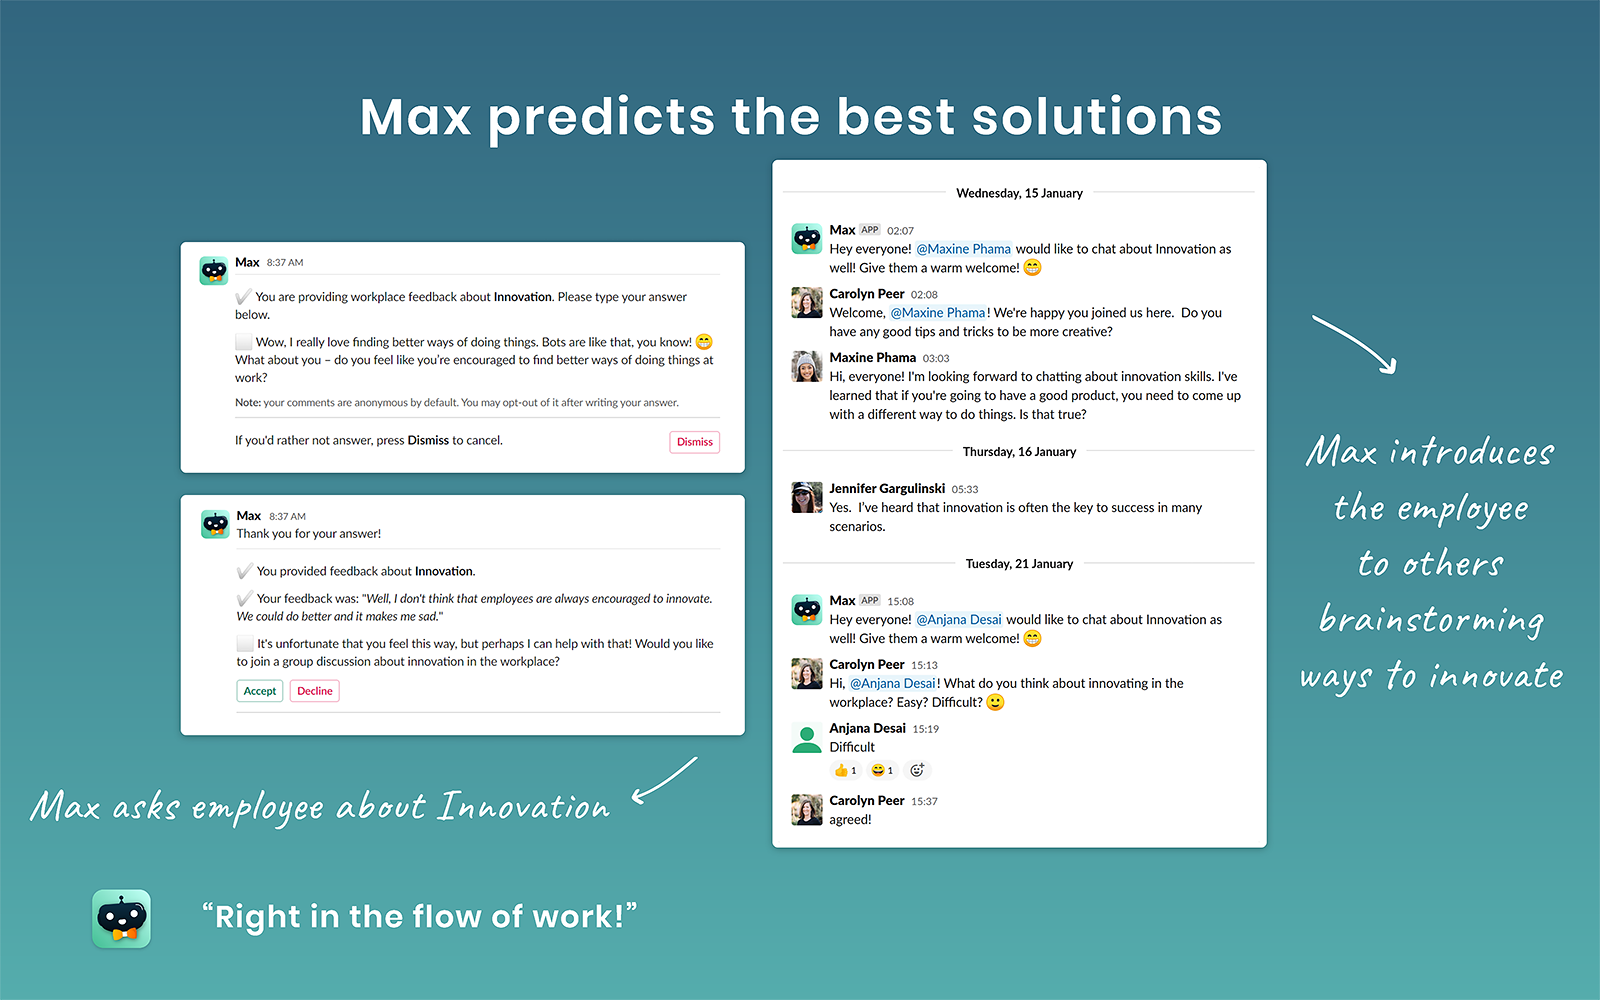 An example image showing humaxa slackbot maxfred's suggesting best solutions.